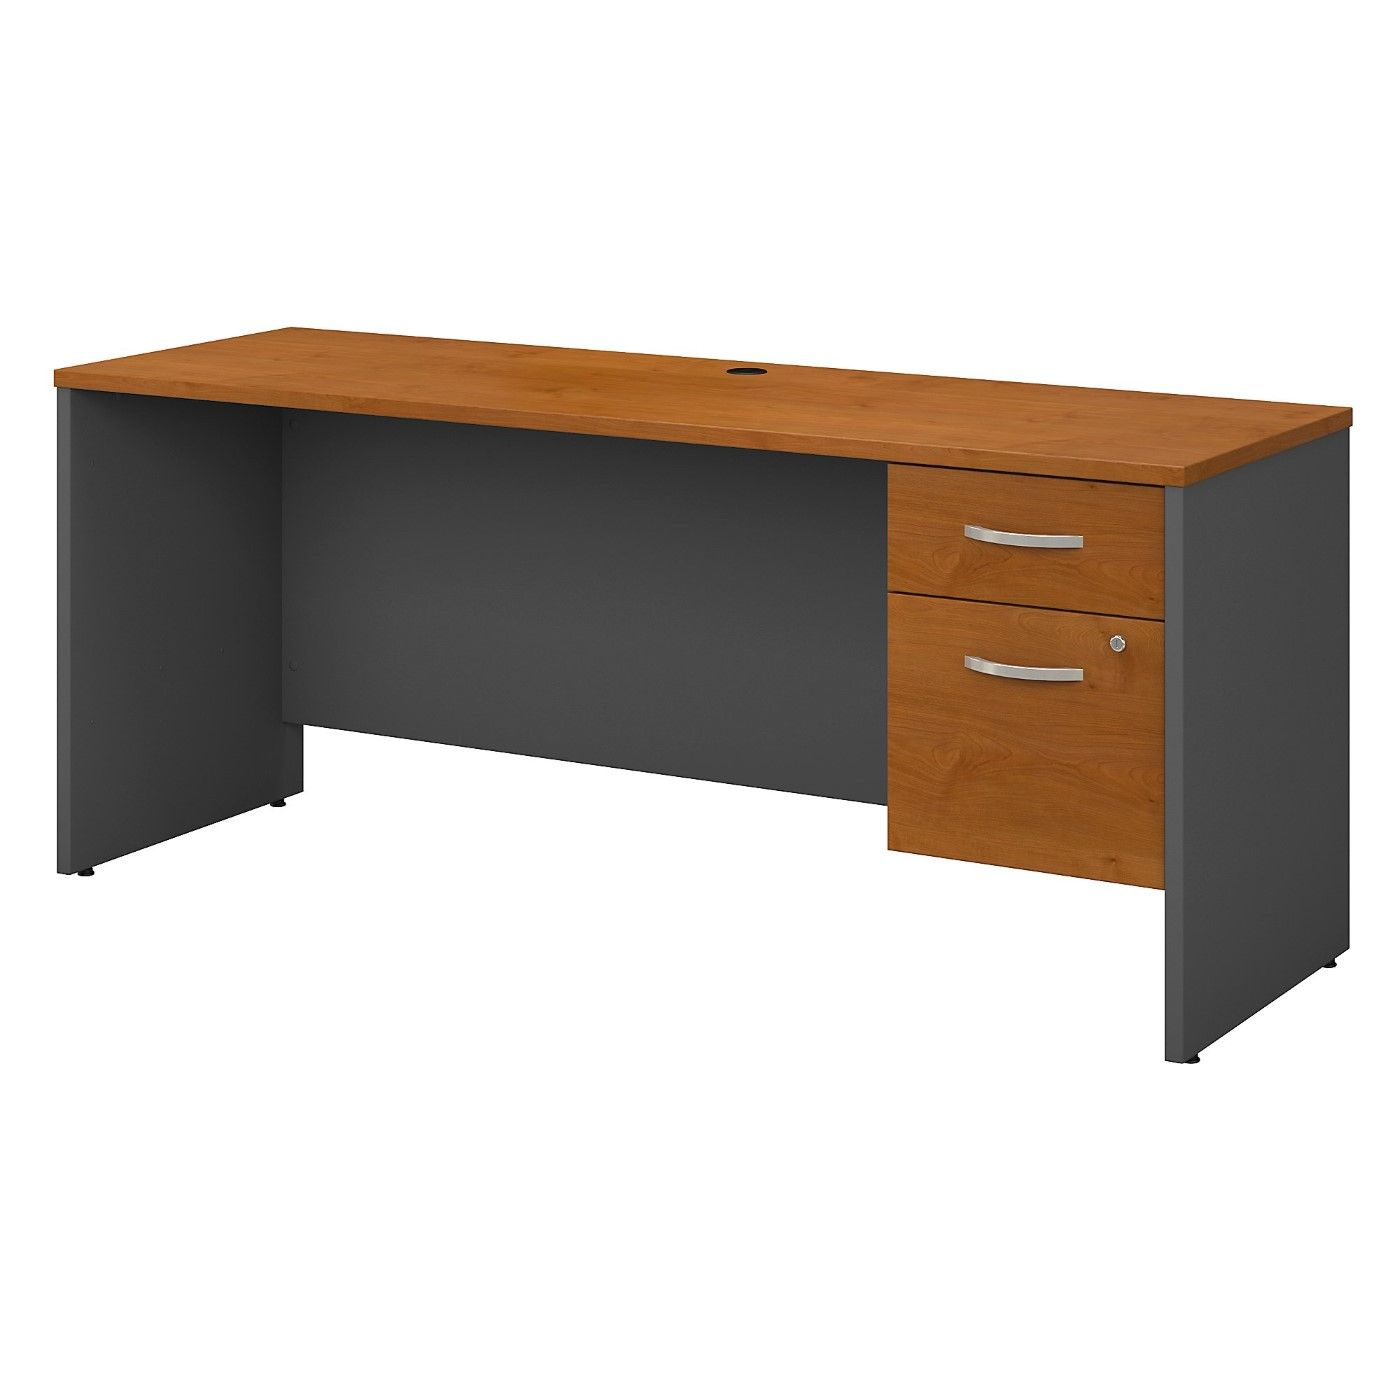 BUSH BUSINESS FURNITURE SERIES C 72W X 24D OFFICE DESK WITH 3/4 PEDESTAL. FREE SHIPPING